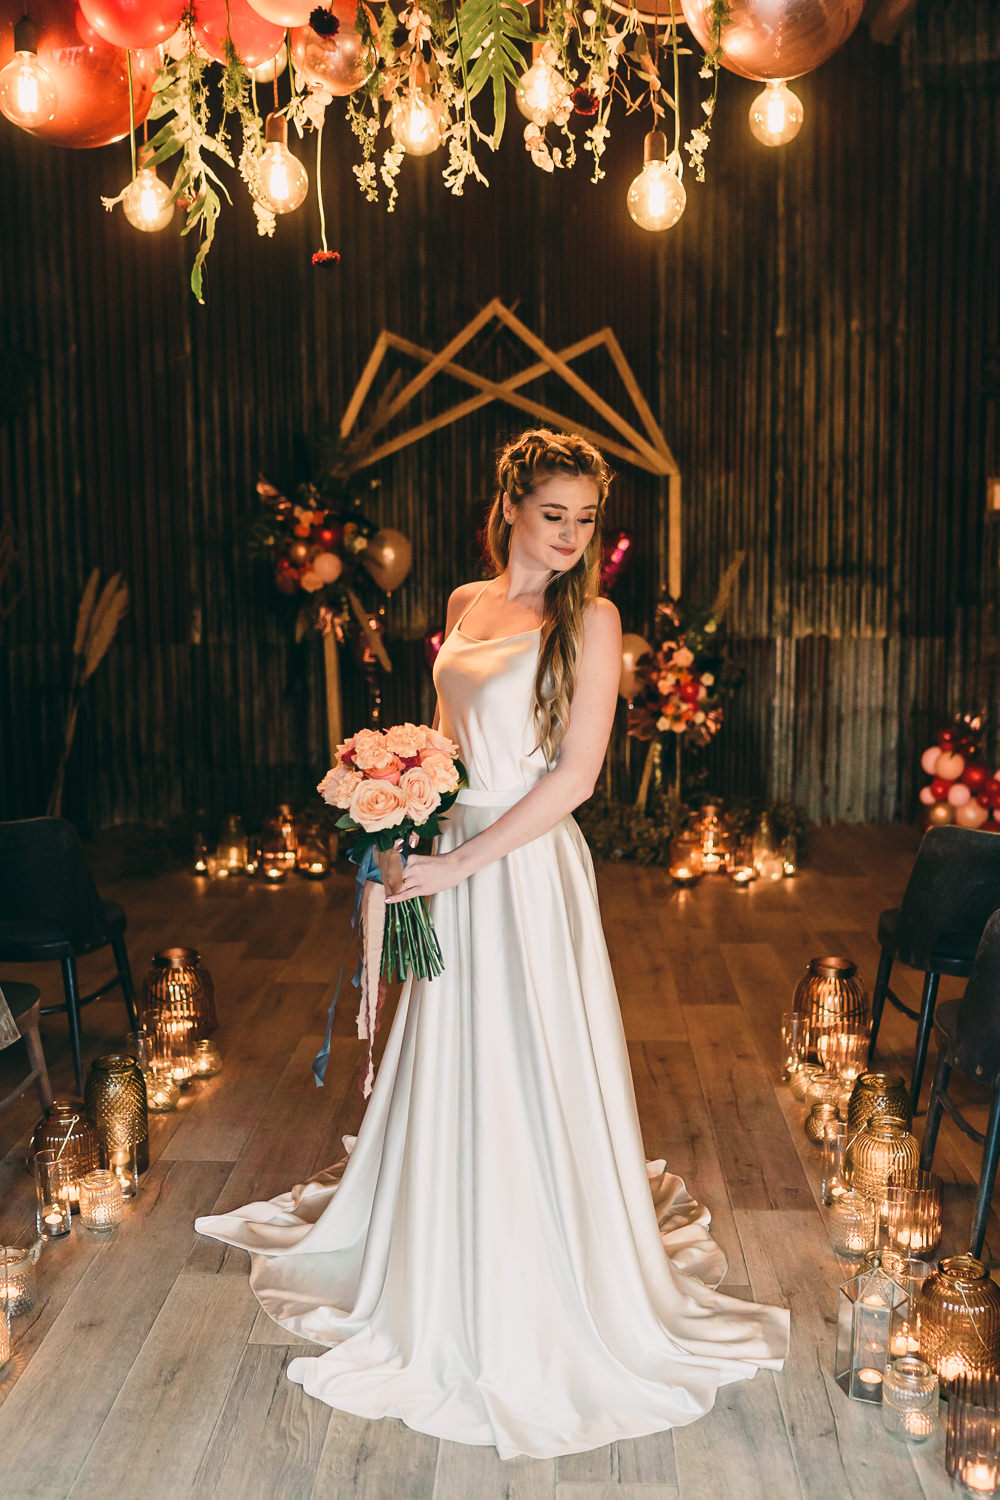 Dress Gown Bride Bridal Silk Crepe Marie Chandler Bridal Balloon Wedding Ideas Leesha Williams Photography